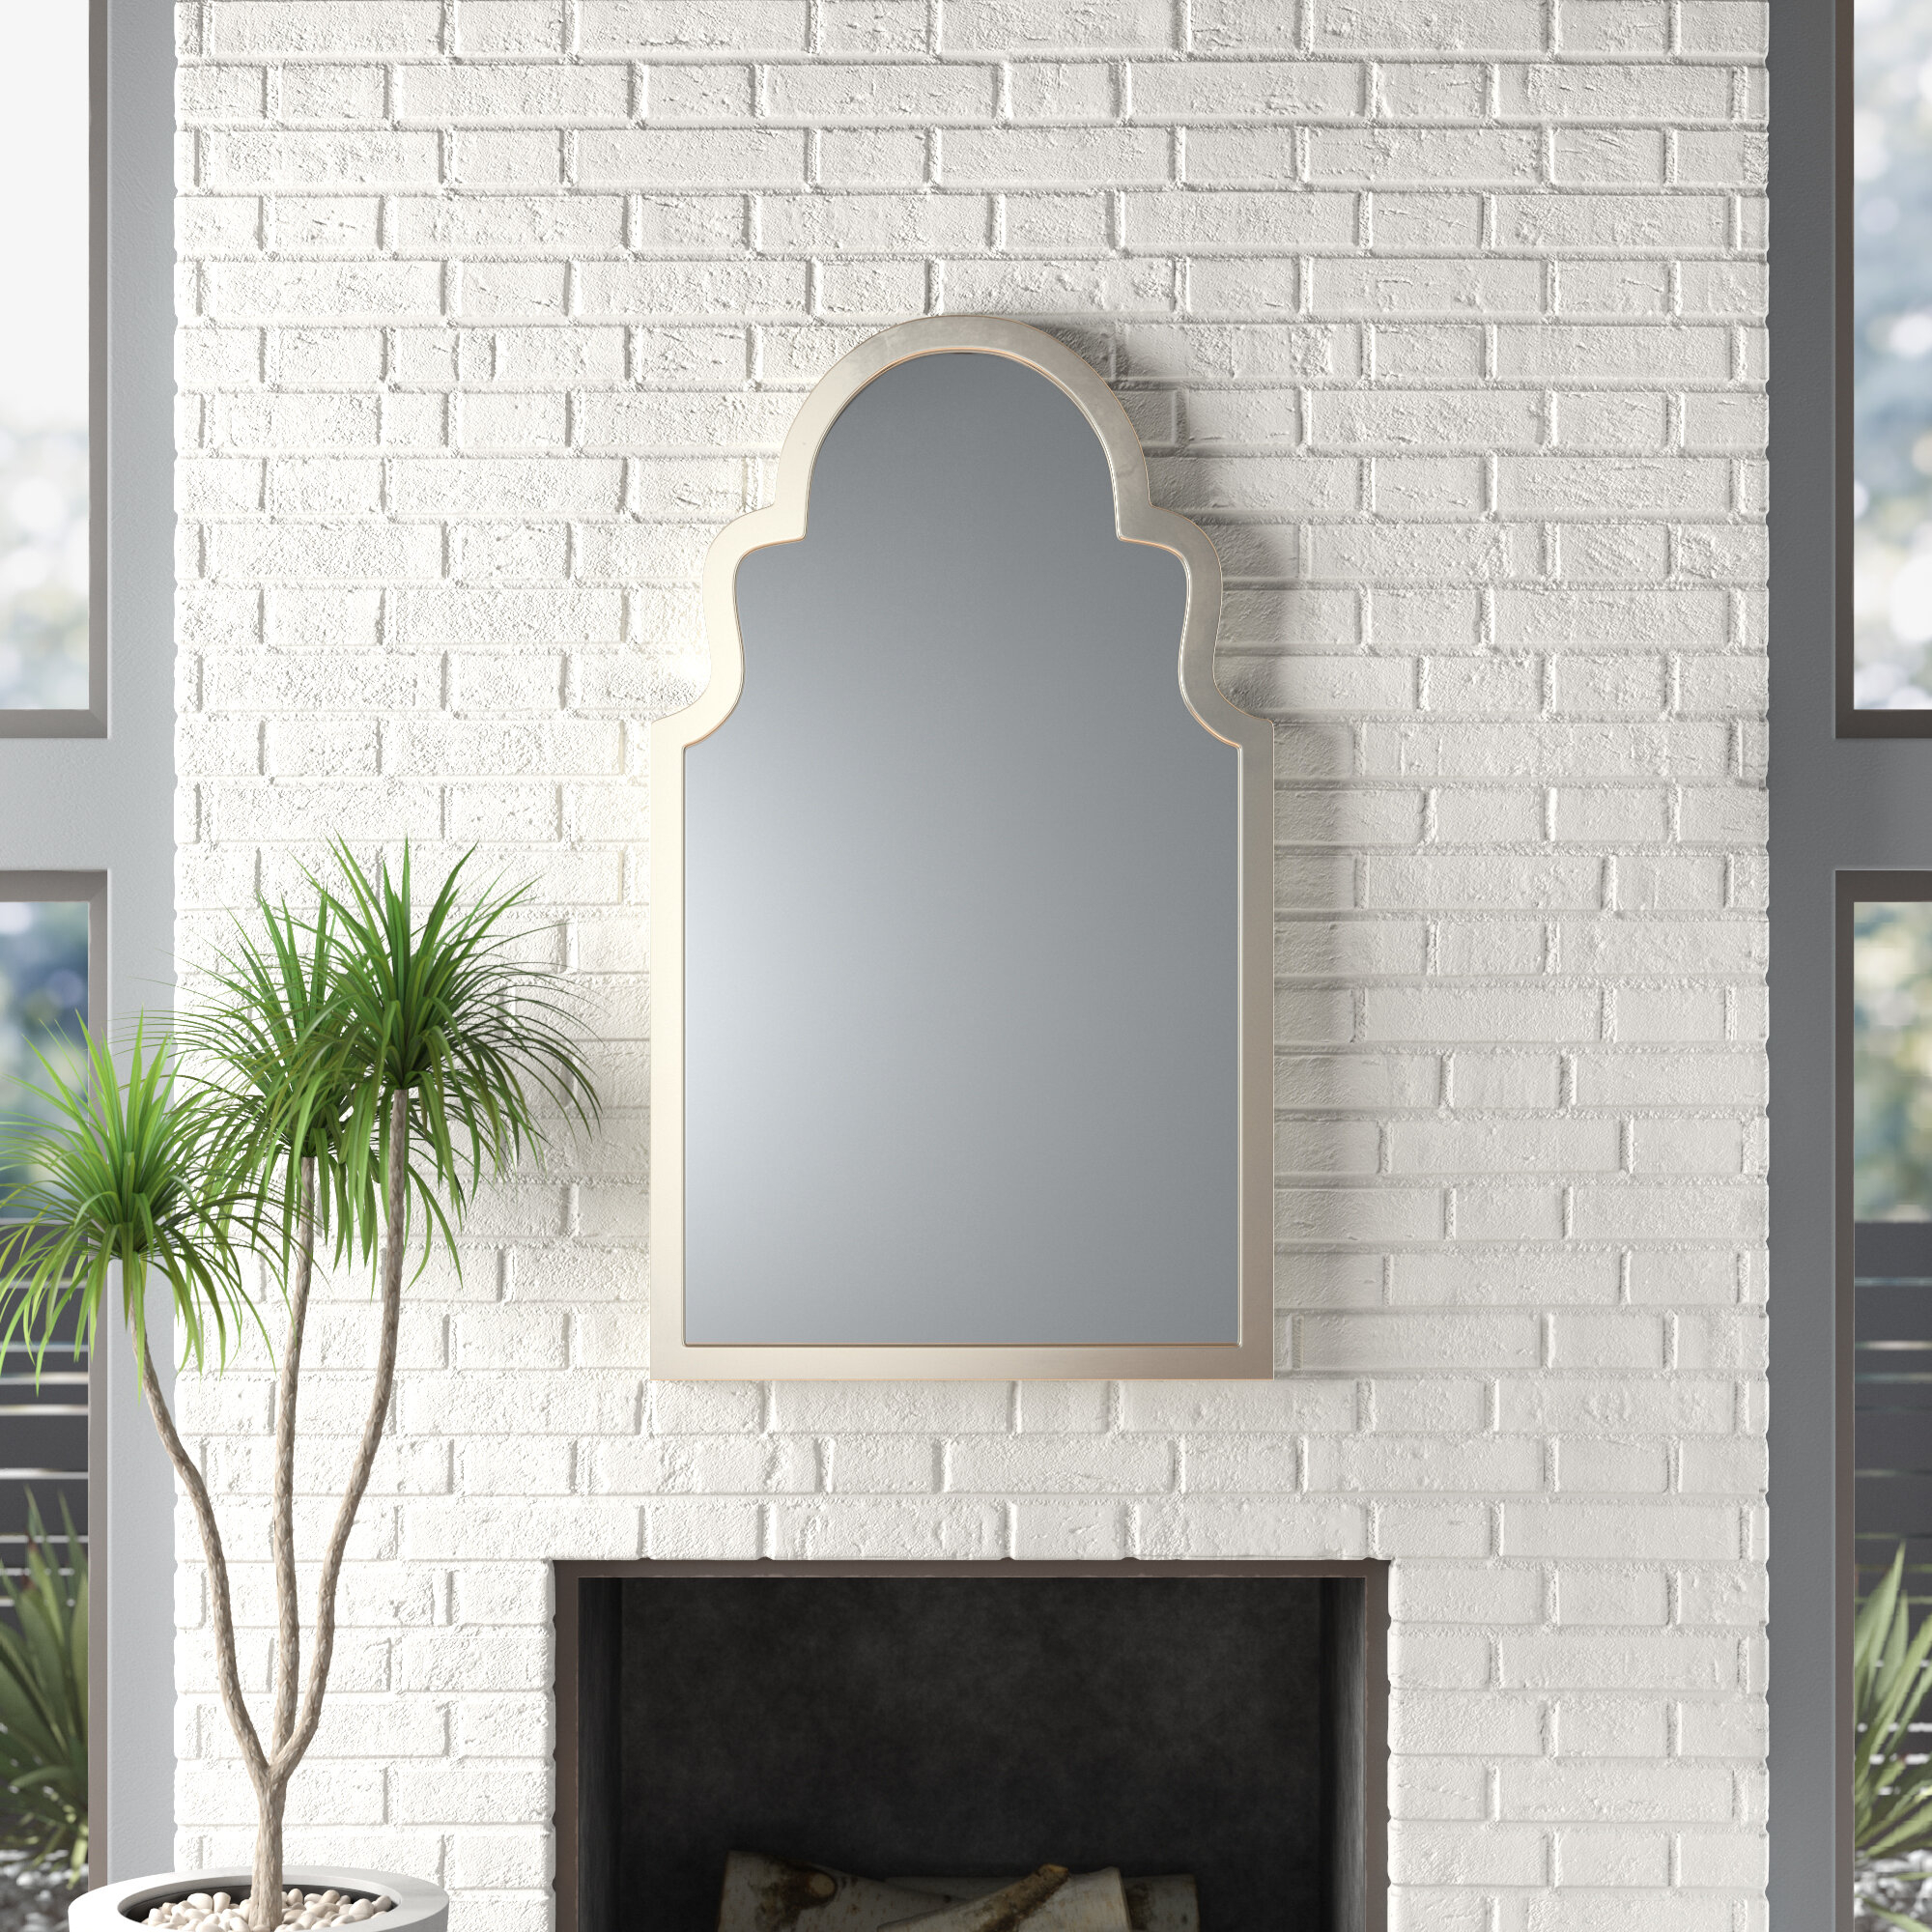 Modern Arch / Crowned Top Wall Mirrors | Allmodern Pertaining To Dariel Tall Arched Scalloped Wall Mirrors (View 12 of 20)